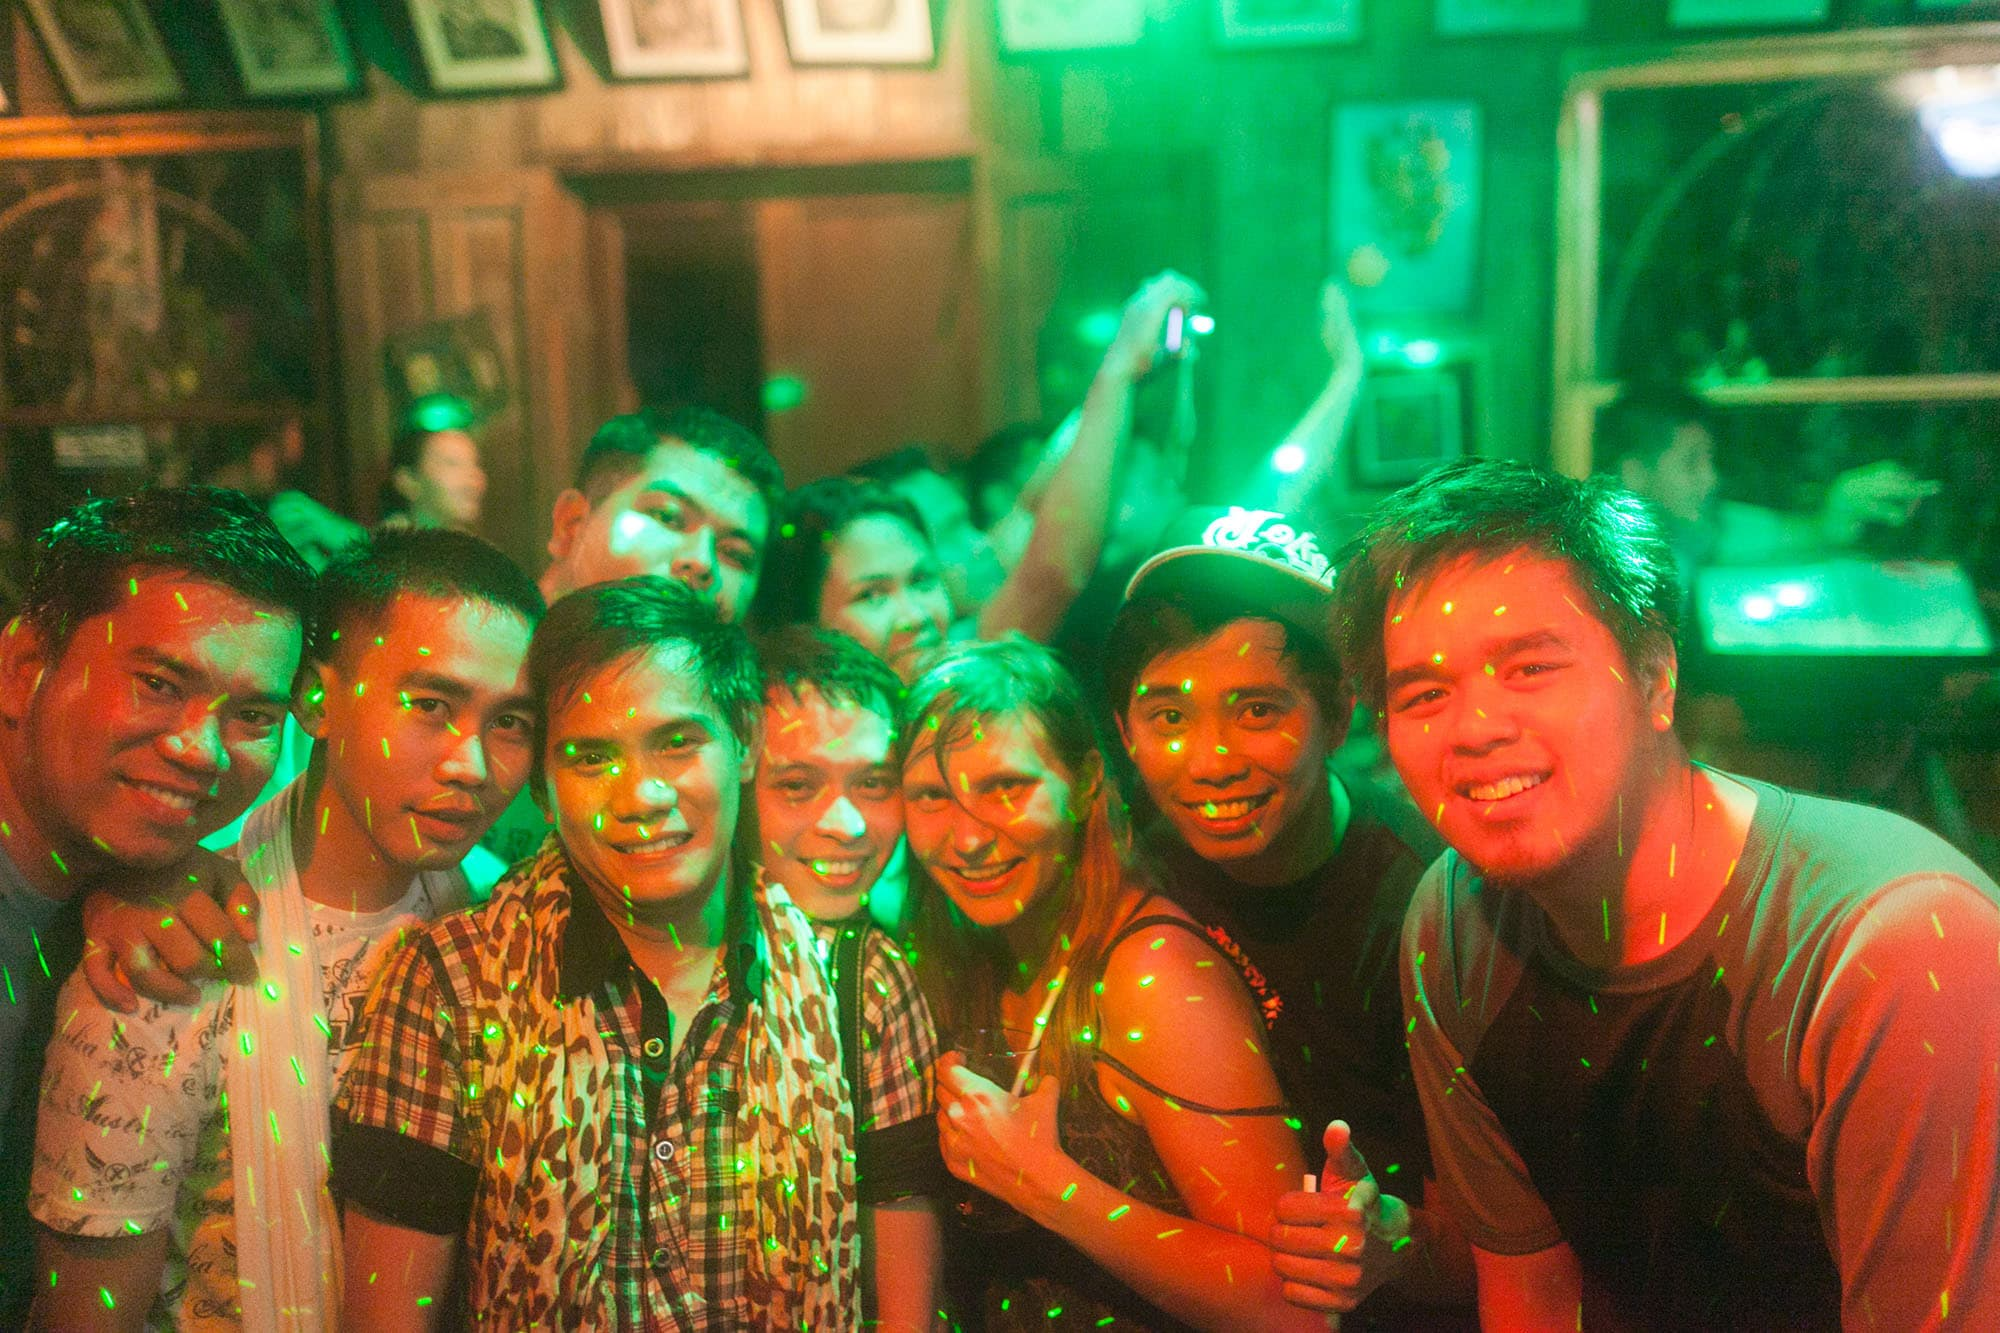 A night out at Balay Tubay in El Nido, Philippines.